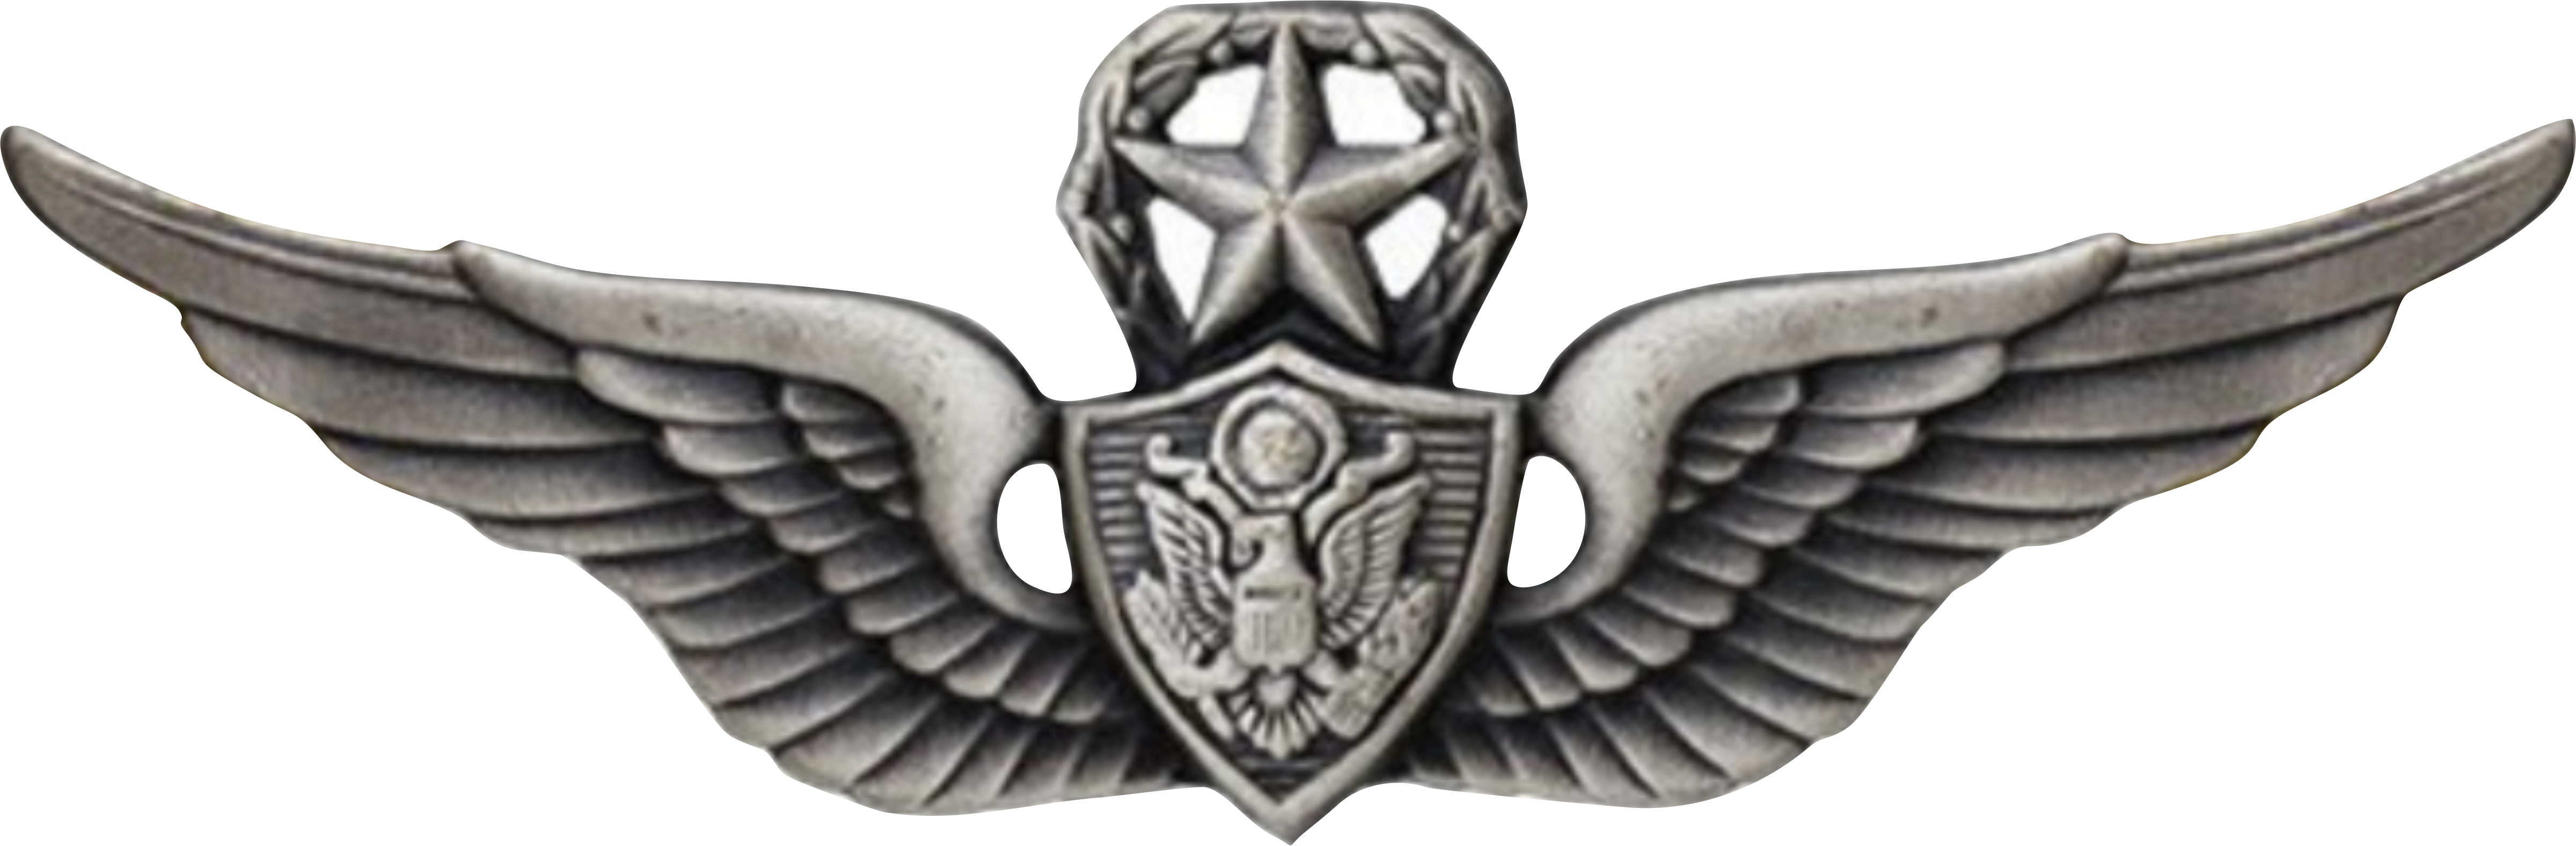 CREWMEMBER WINGS WITH WREATH AND STAR